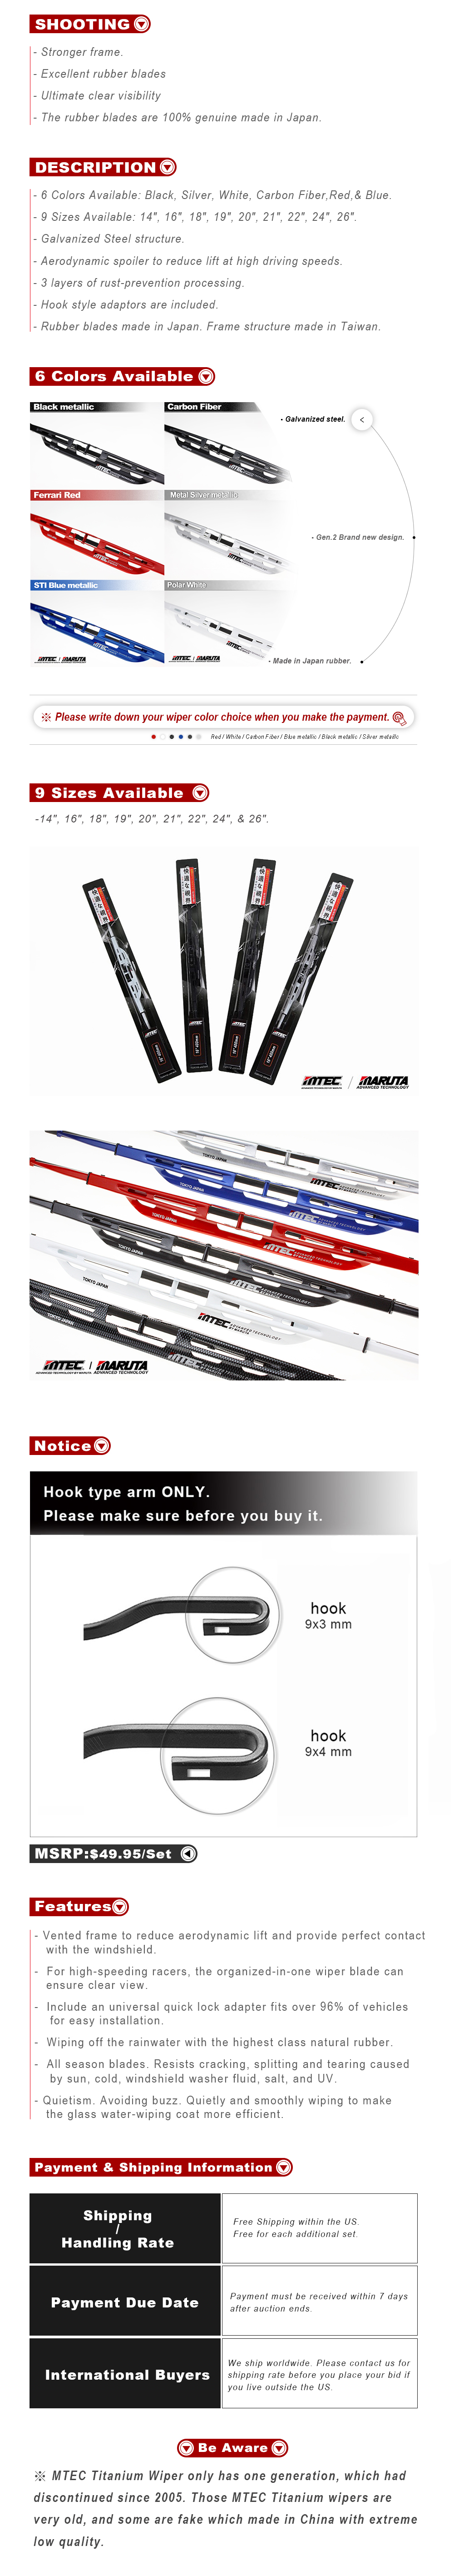 MTEC Sports Windshield Wiper Blades for Acura RSX 2002-2006 Version 2